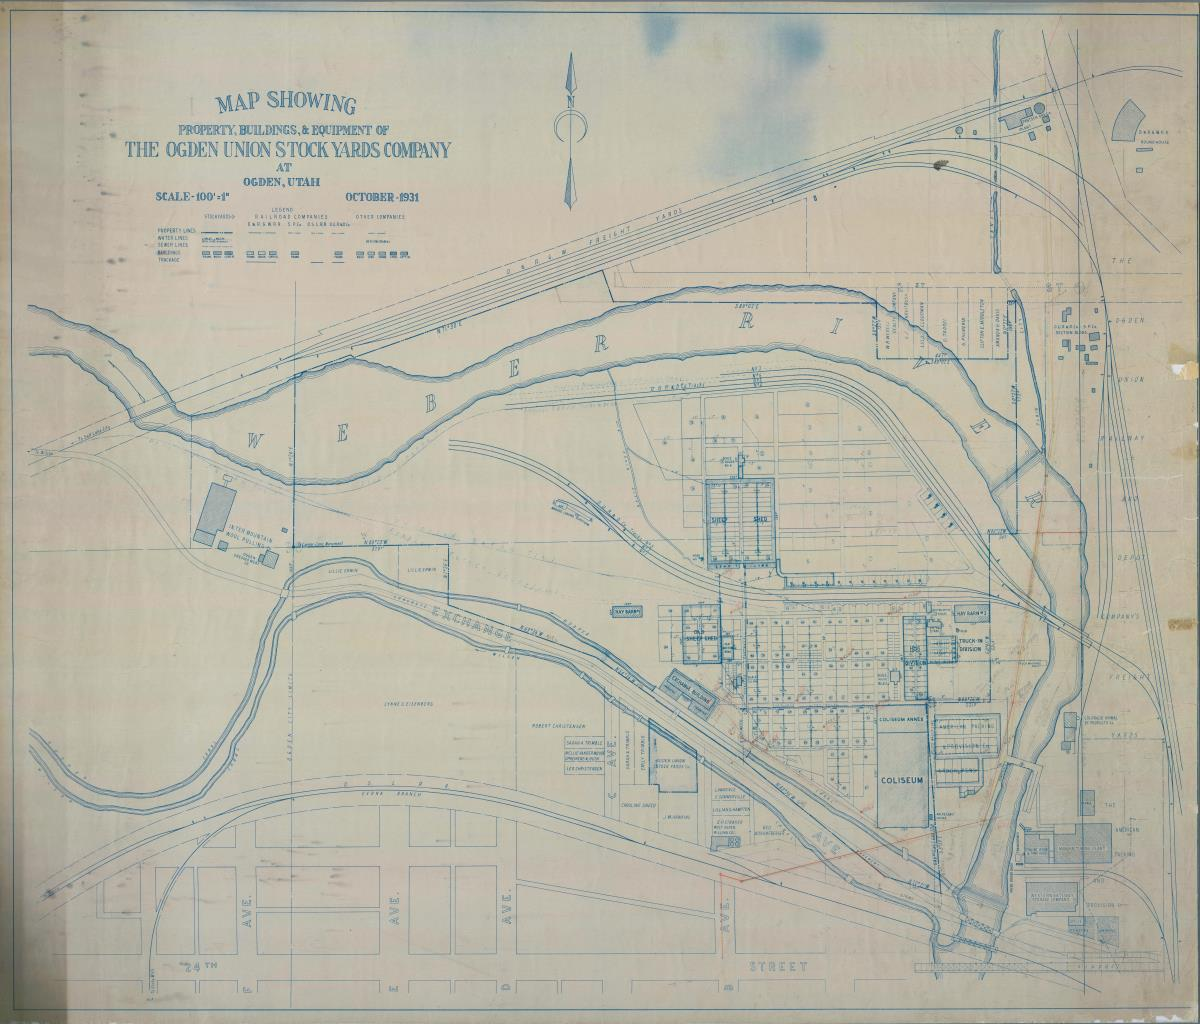 Ogden Stockyards Historic Map